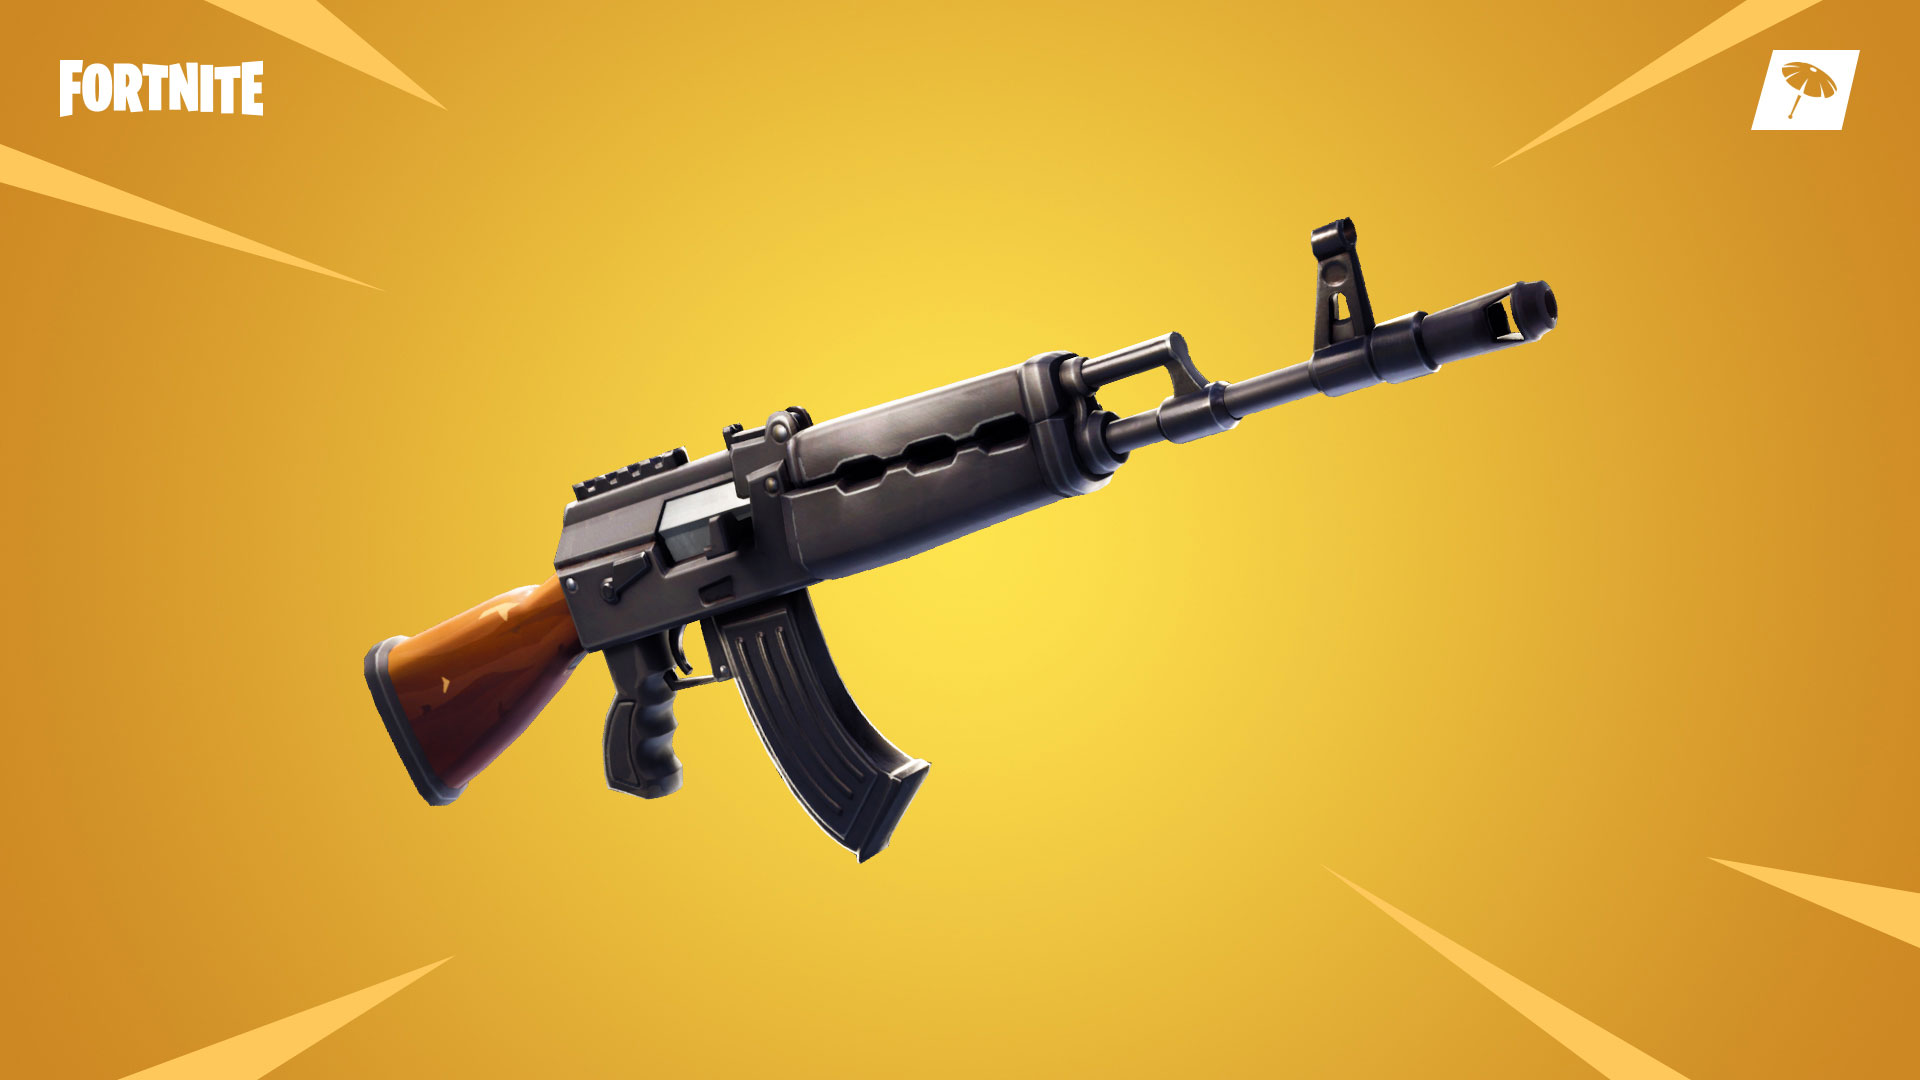 Fortnite Best Guns And Weapons List Season 7 S Top Weapons In The